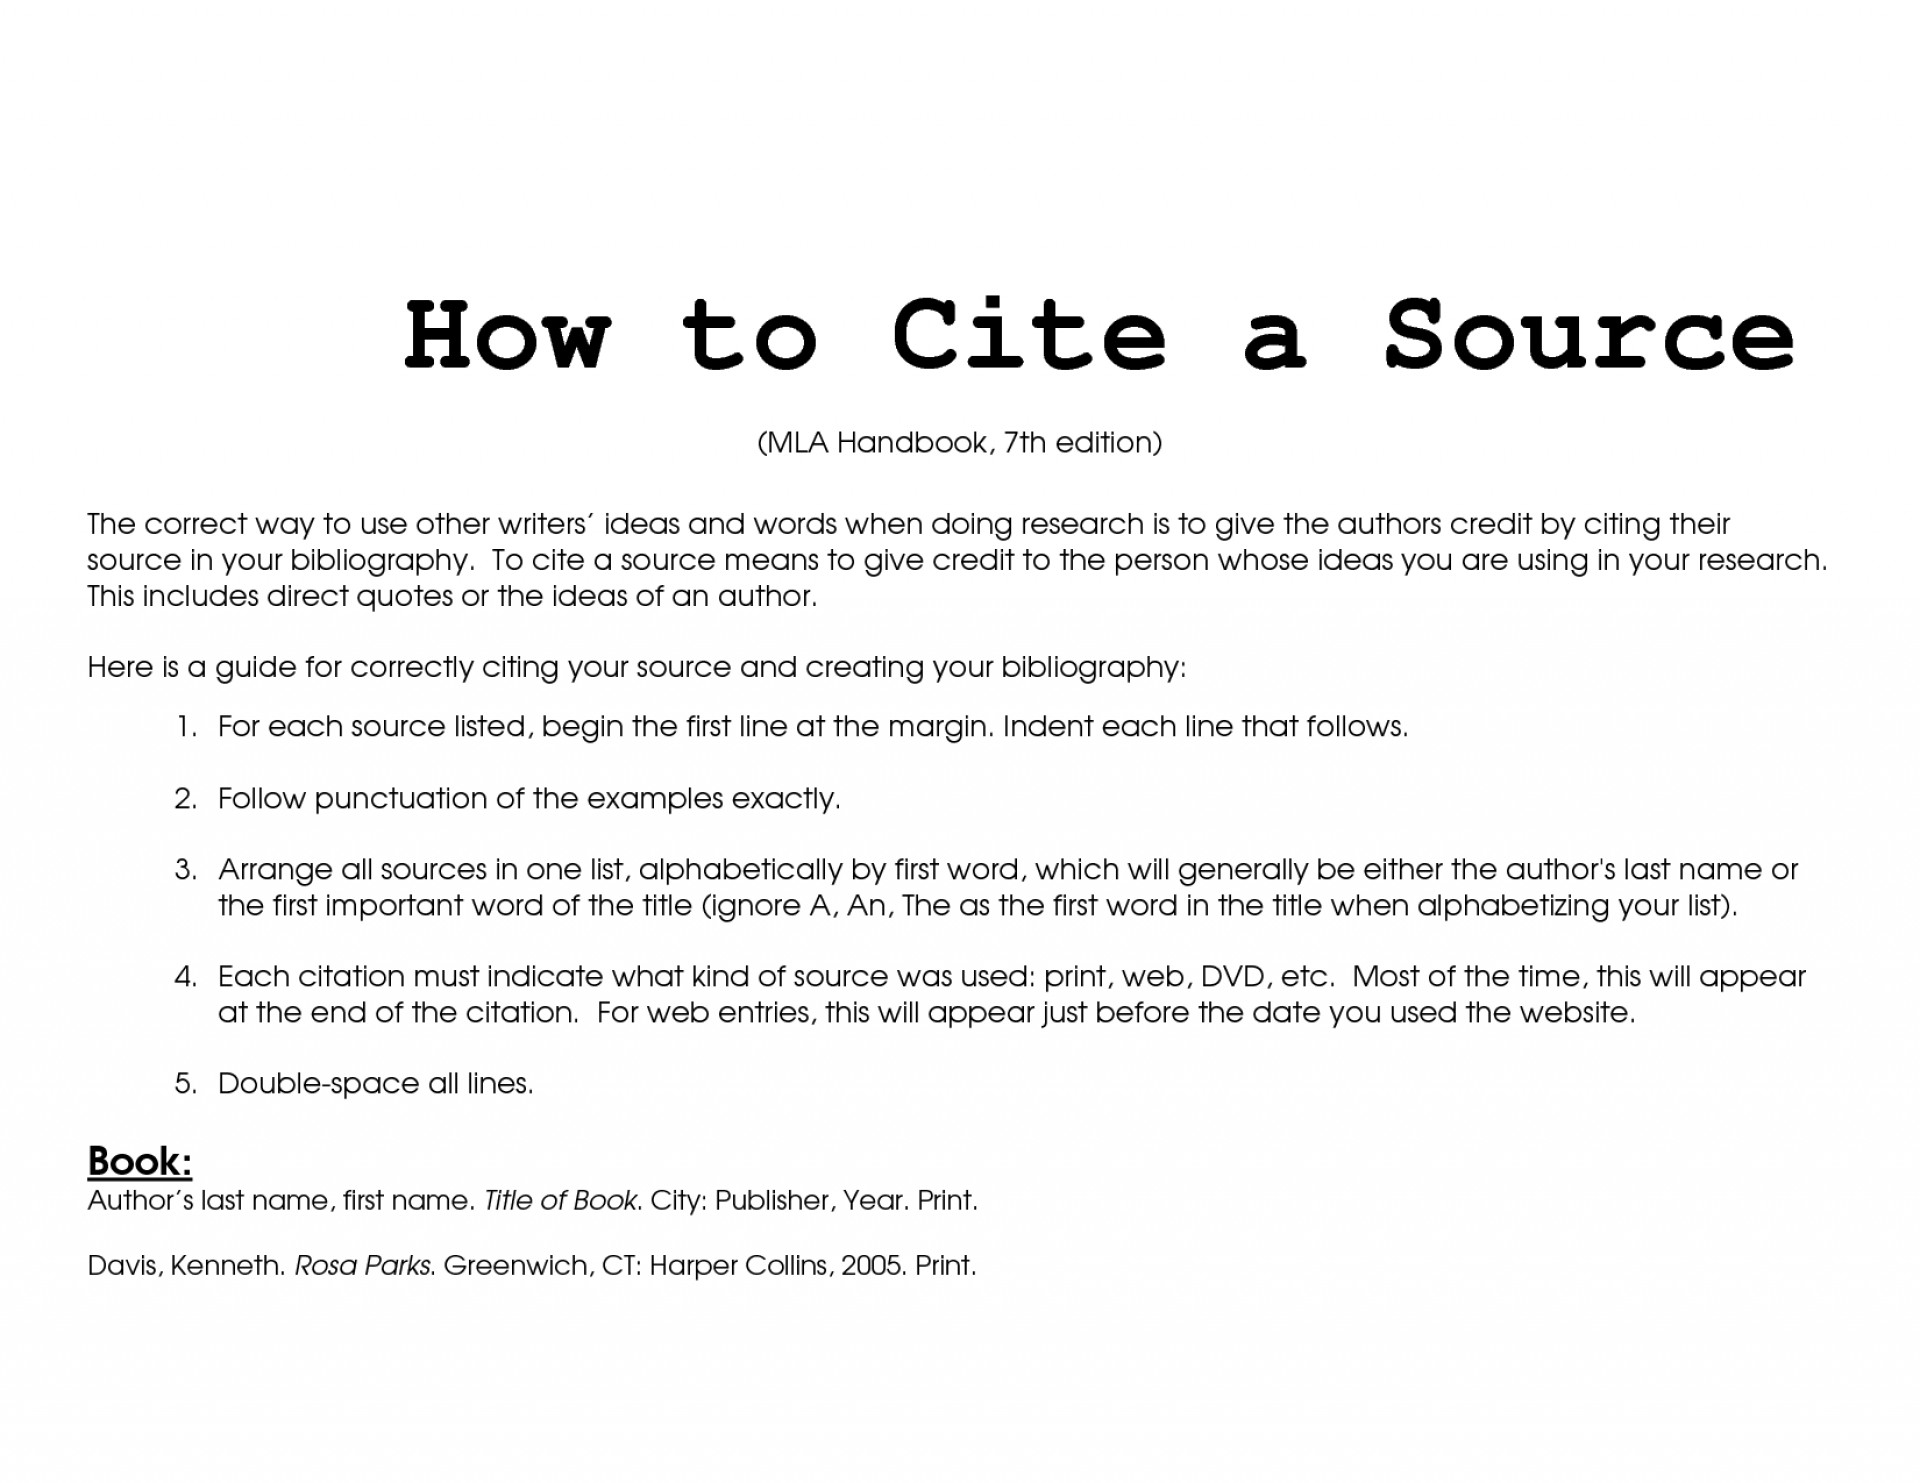 007 Mla How To Cite Source In Research Paper Unbelievable A Format 1920